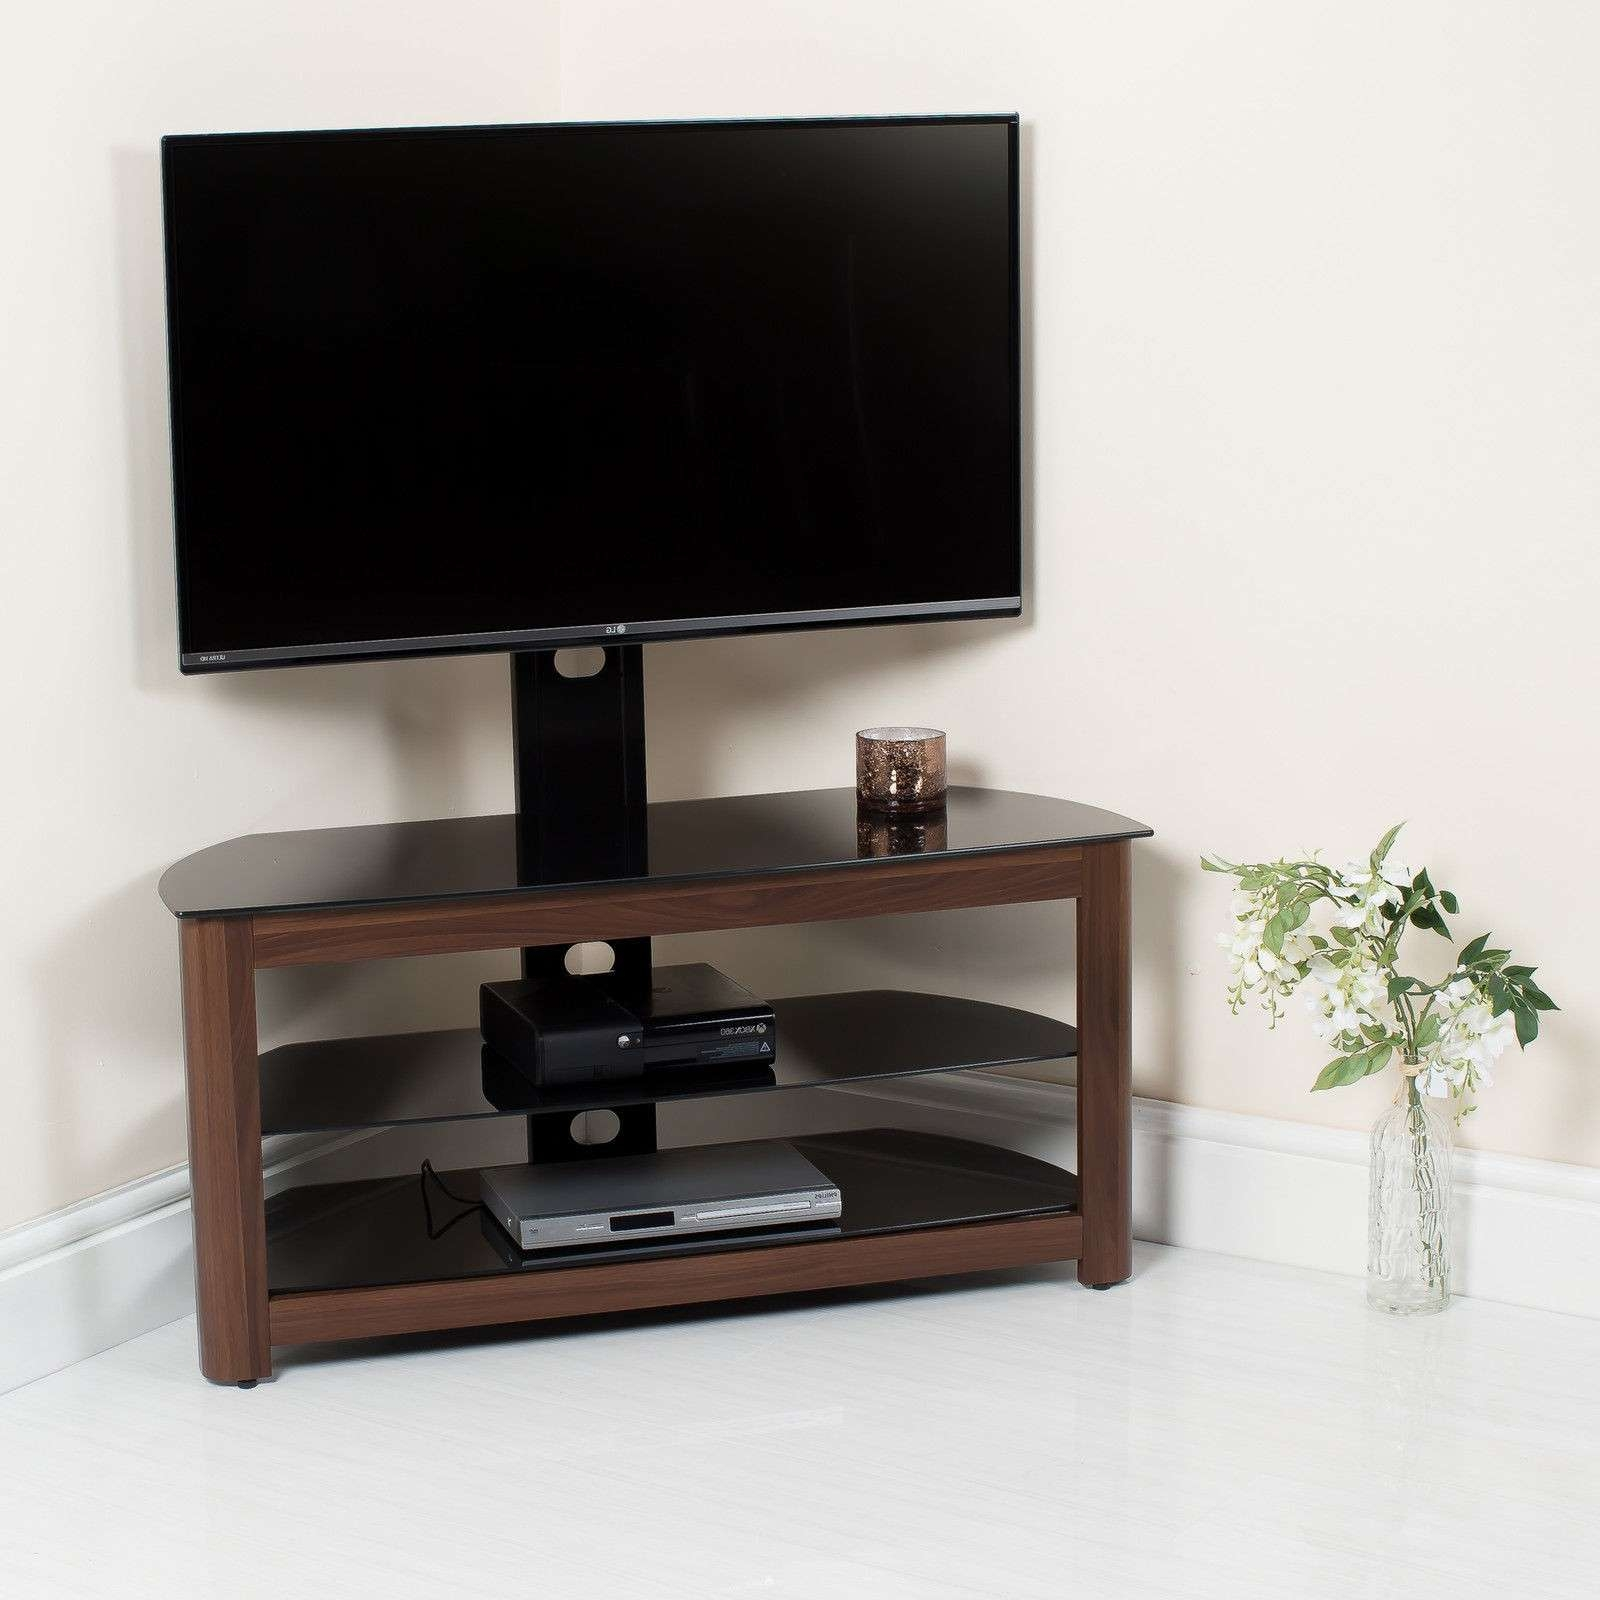 Walnut High Gloss Tv Stand With Swivel Bracket Abreo Home Furniture Within Walnut Tv Stands (View 4 of 15)